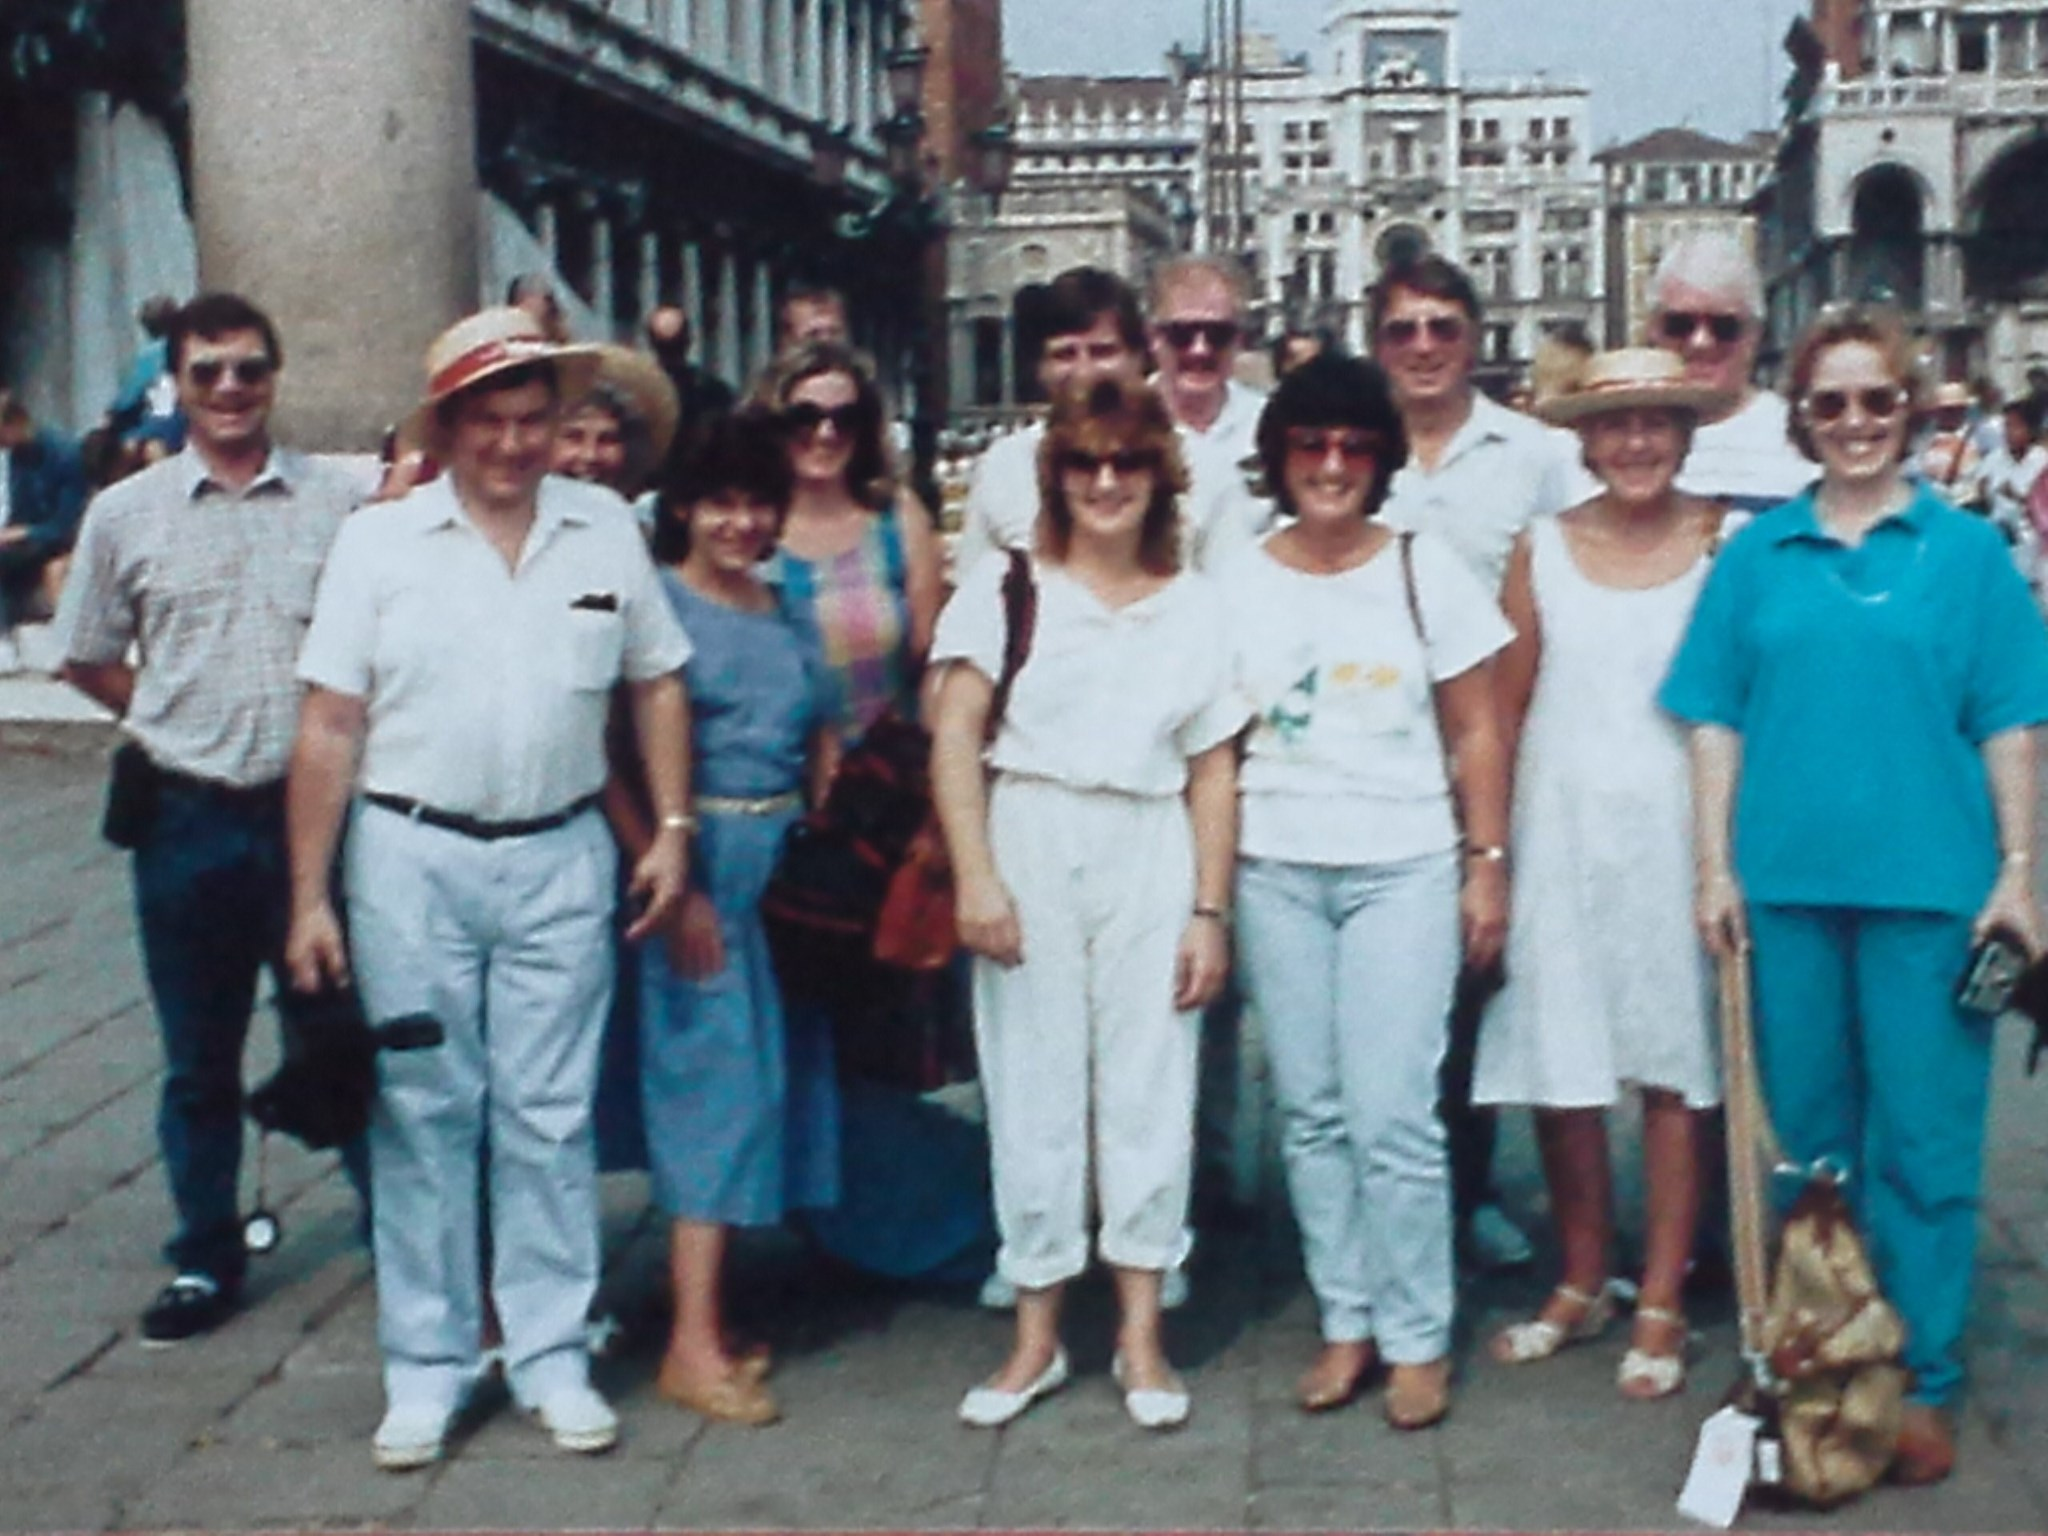 Courage team in Venice - 1980s